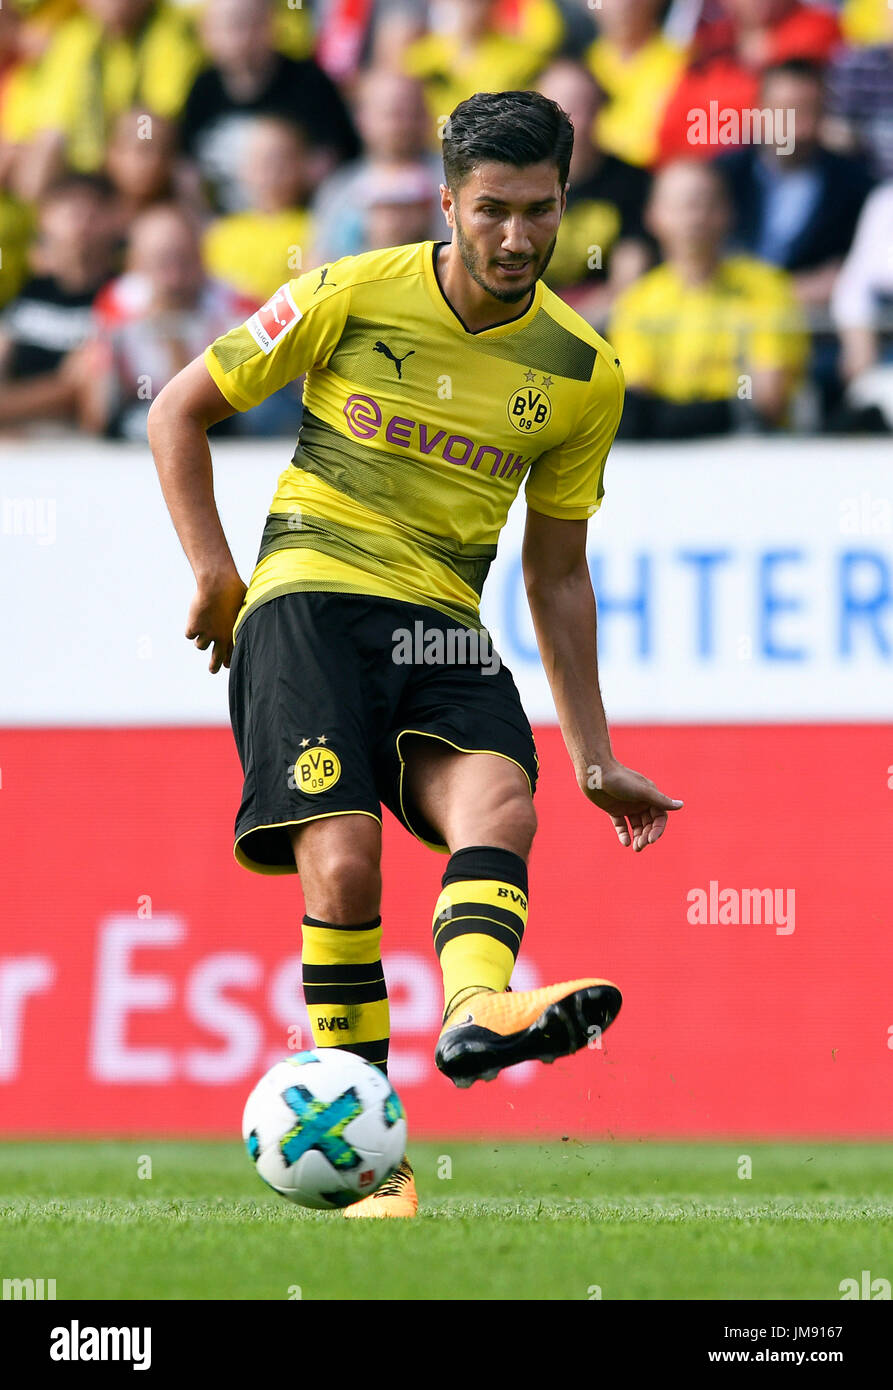 Friendly match, Rot-Weiss Essen vs Bor. Dortmund; Nuri Sahin from Borussia Dortmund. - Stock Image